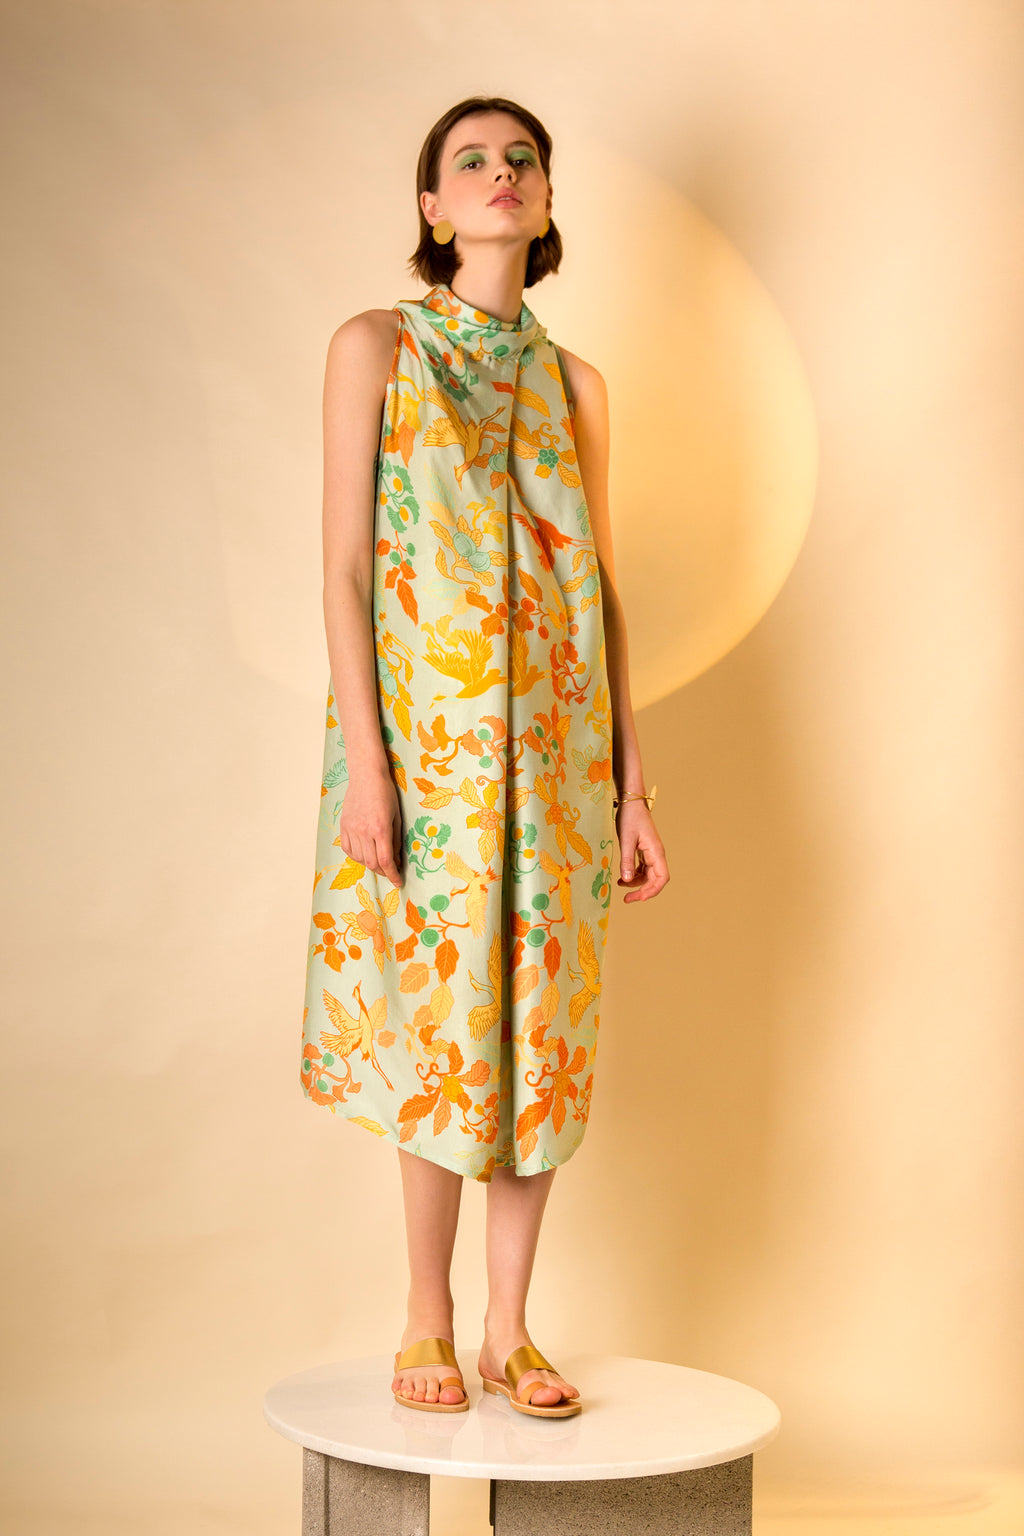 Dress Carioca in Satin Viscose AM Japanese Print